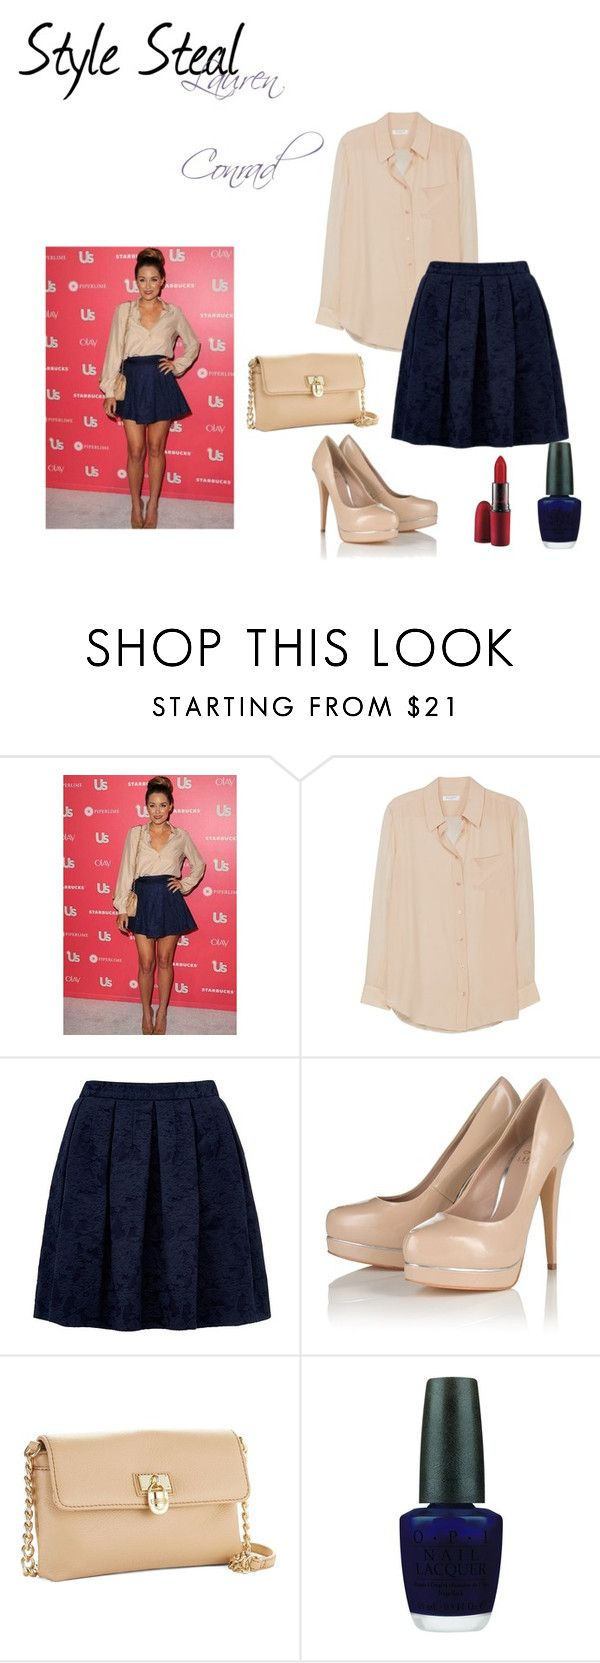 """""""Style Steal - Lauren Conrad"""" by jessica-designs ❤ liked on Polyvore featuring Paper Crown, Equipment, Forever New, Lipsy, Calvin Klein, OPI and MAC Cosmetics"""